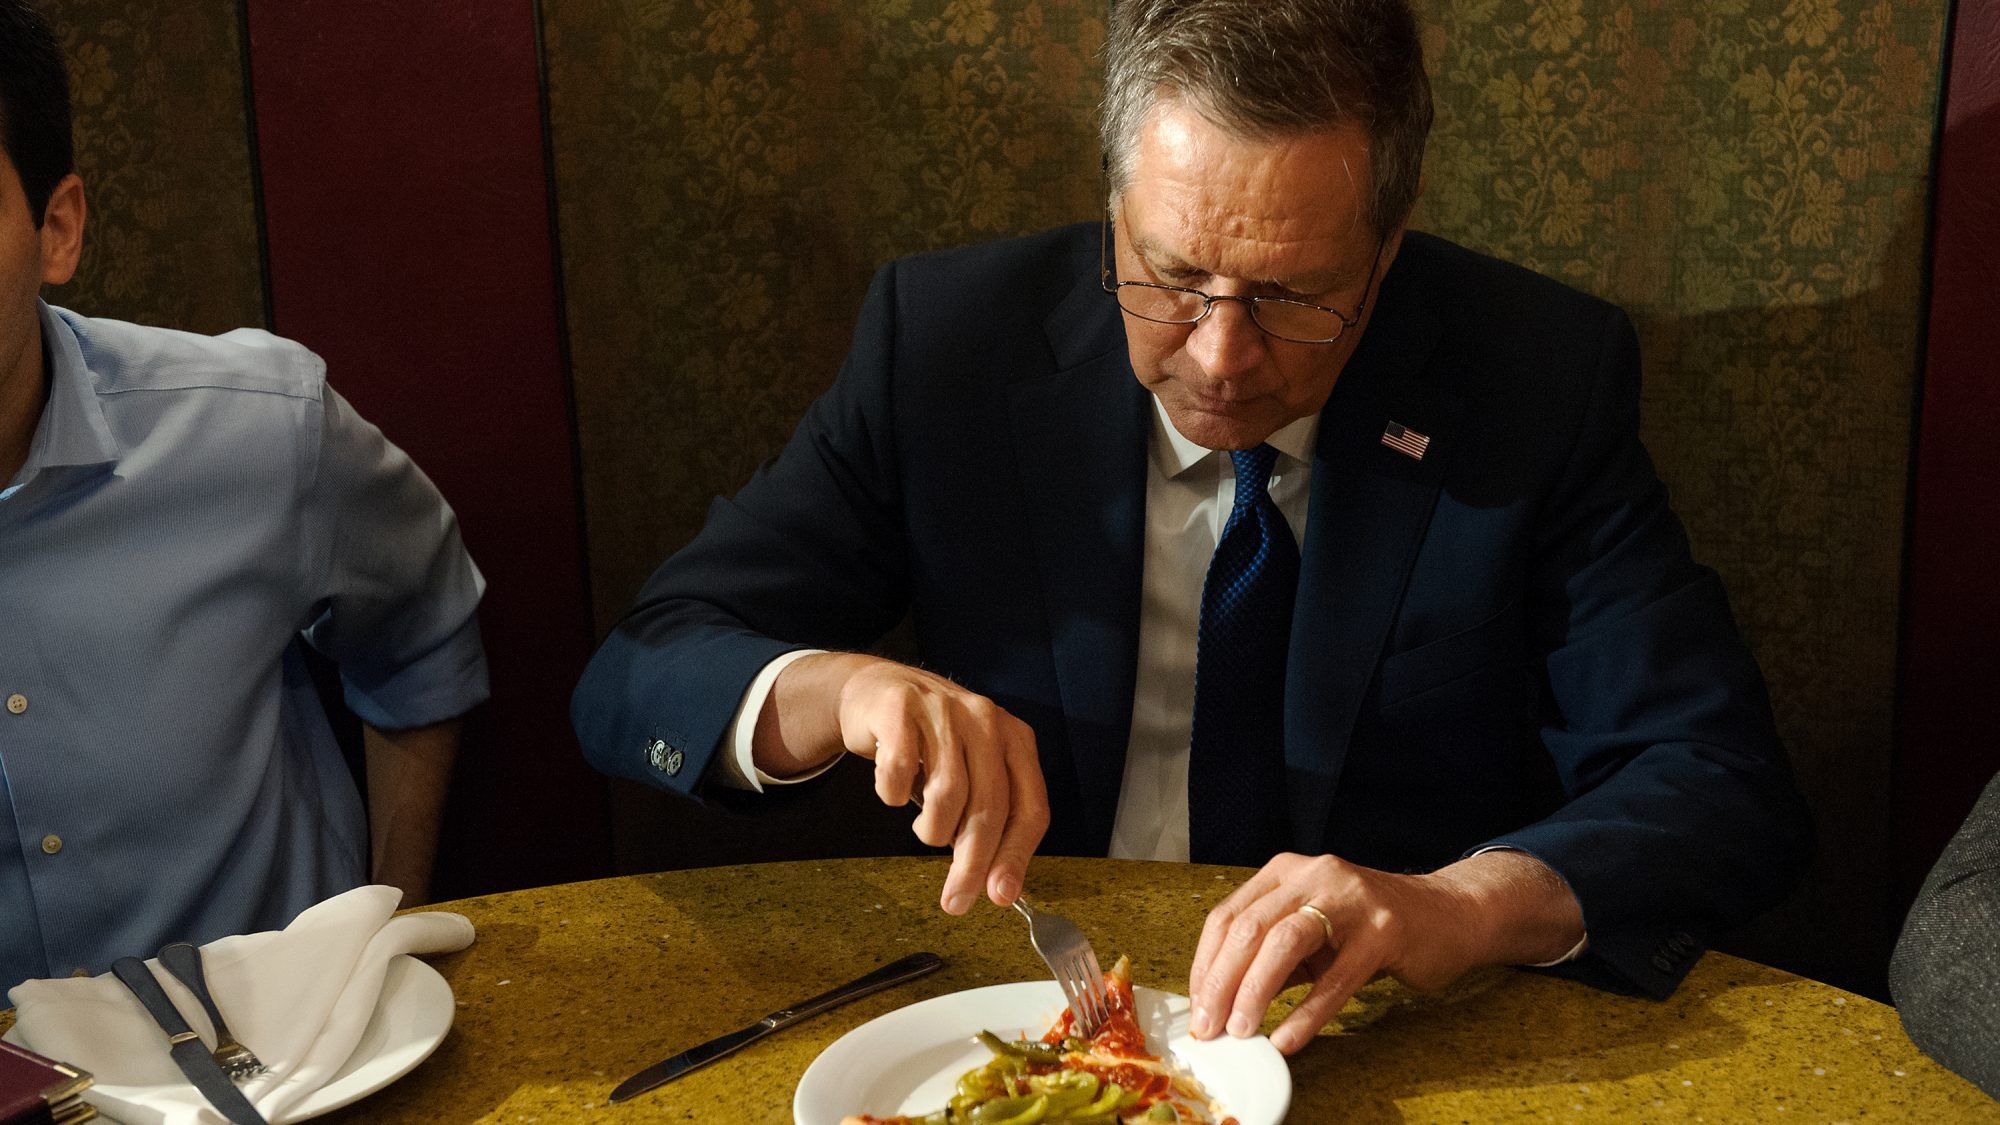 John Kasich Eating Pizza